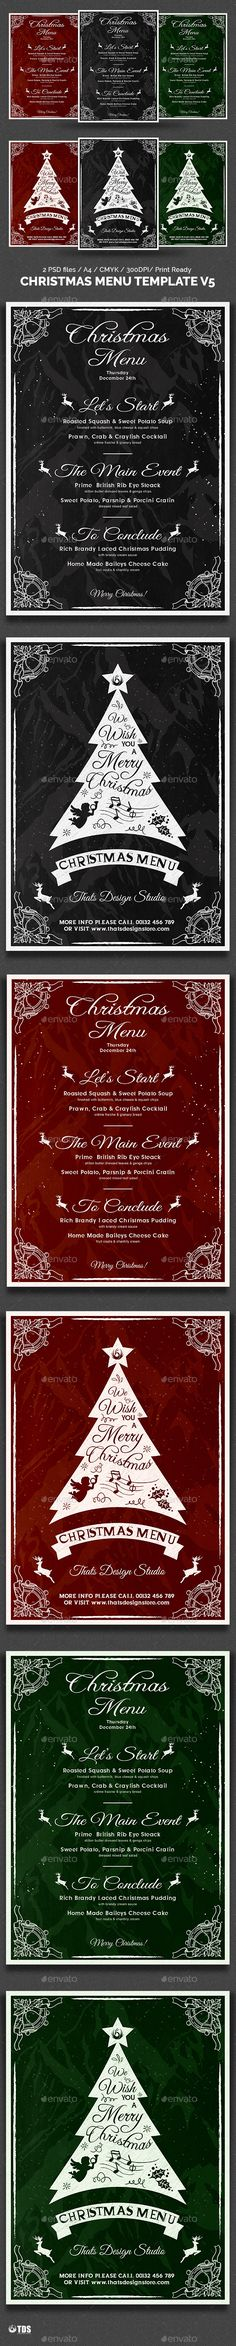 Christmas Menu Template V3 Christmas menus, Templates and Christmas - christmas menu word template